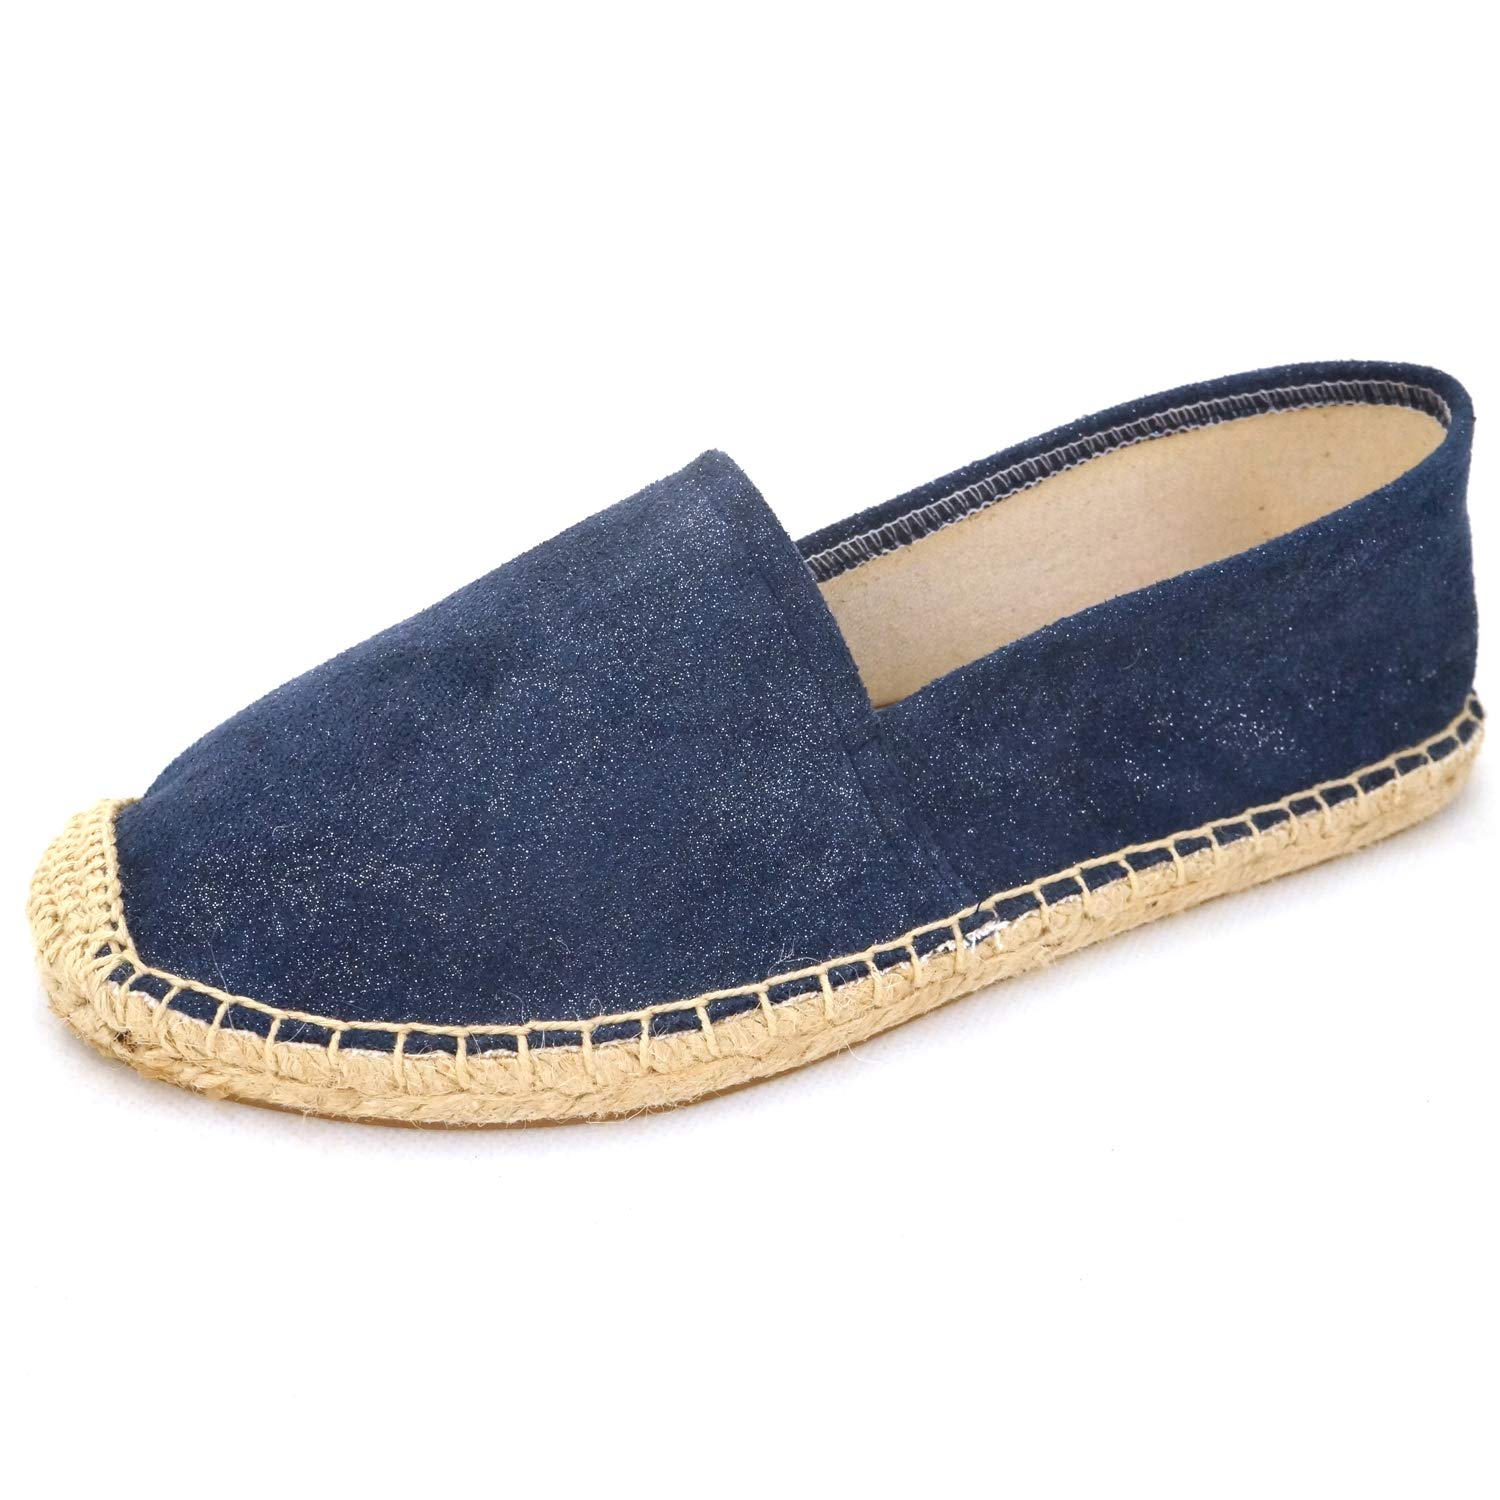 ce73ee3e56f43 Espadrille Flats for Women, Slip on Espadrille Loafers Sneakers Shoes Navy  Blue Tan Brown Rose Gold Silver Red Ladies Canvas/Faux-Suede Espadrilles  for ...